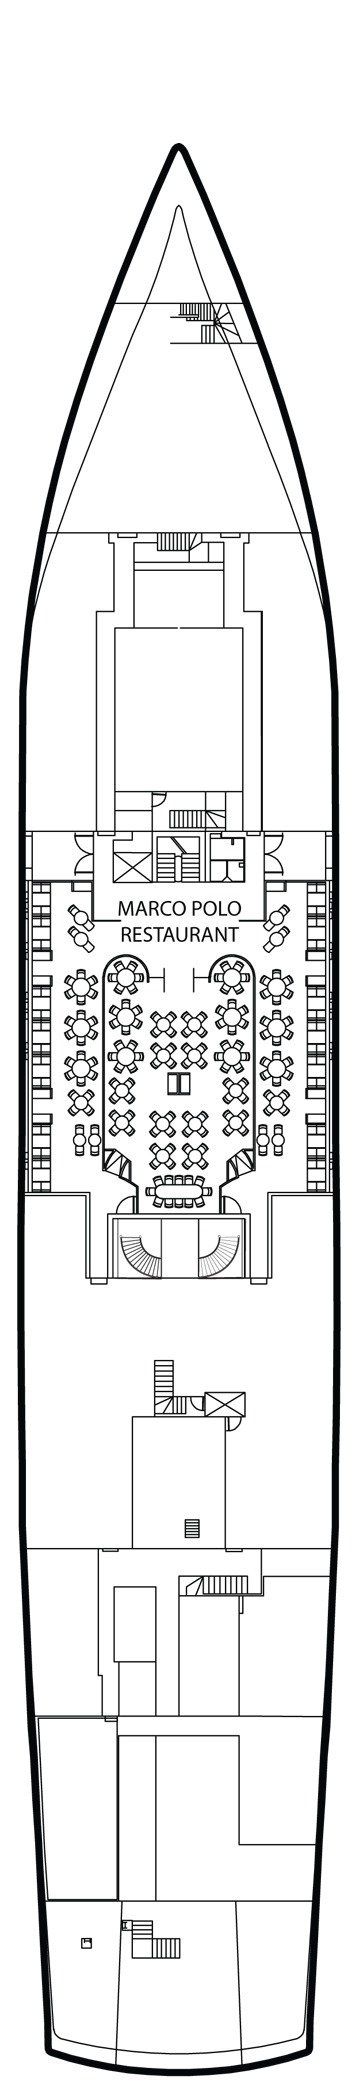 Voyages to Antiquity Aegean Odyssey deck plans - Marco Polo Deck